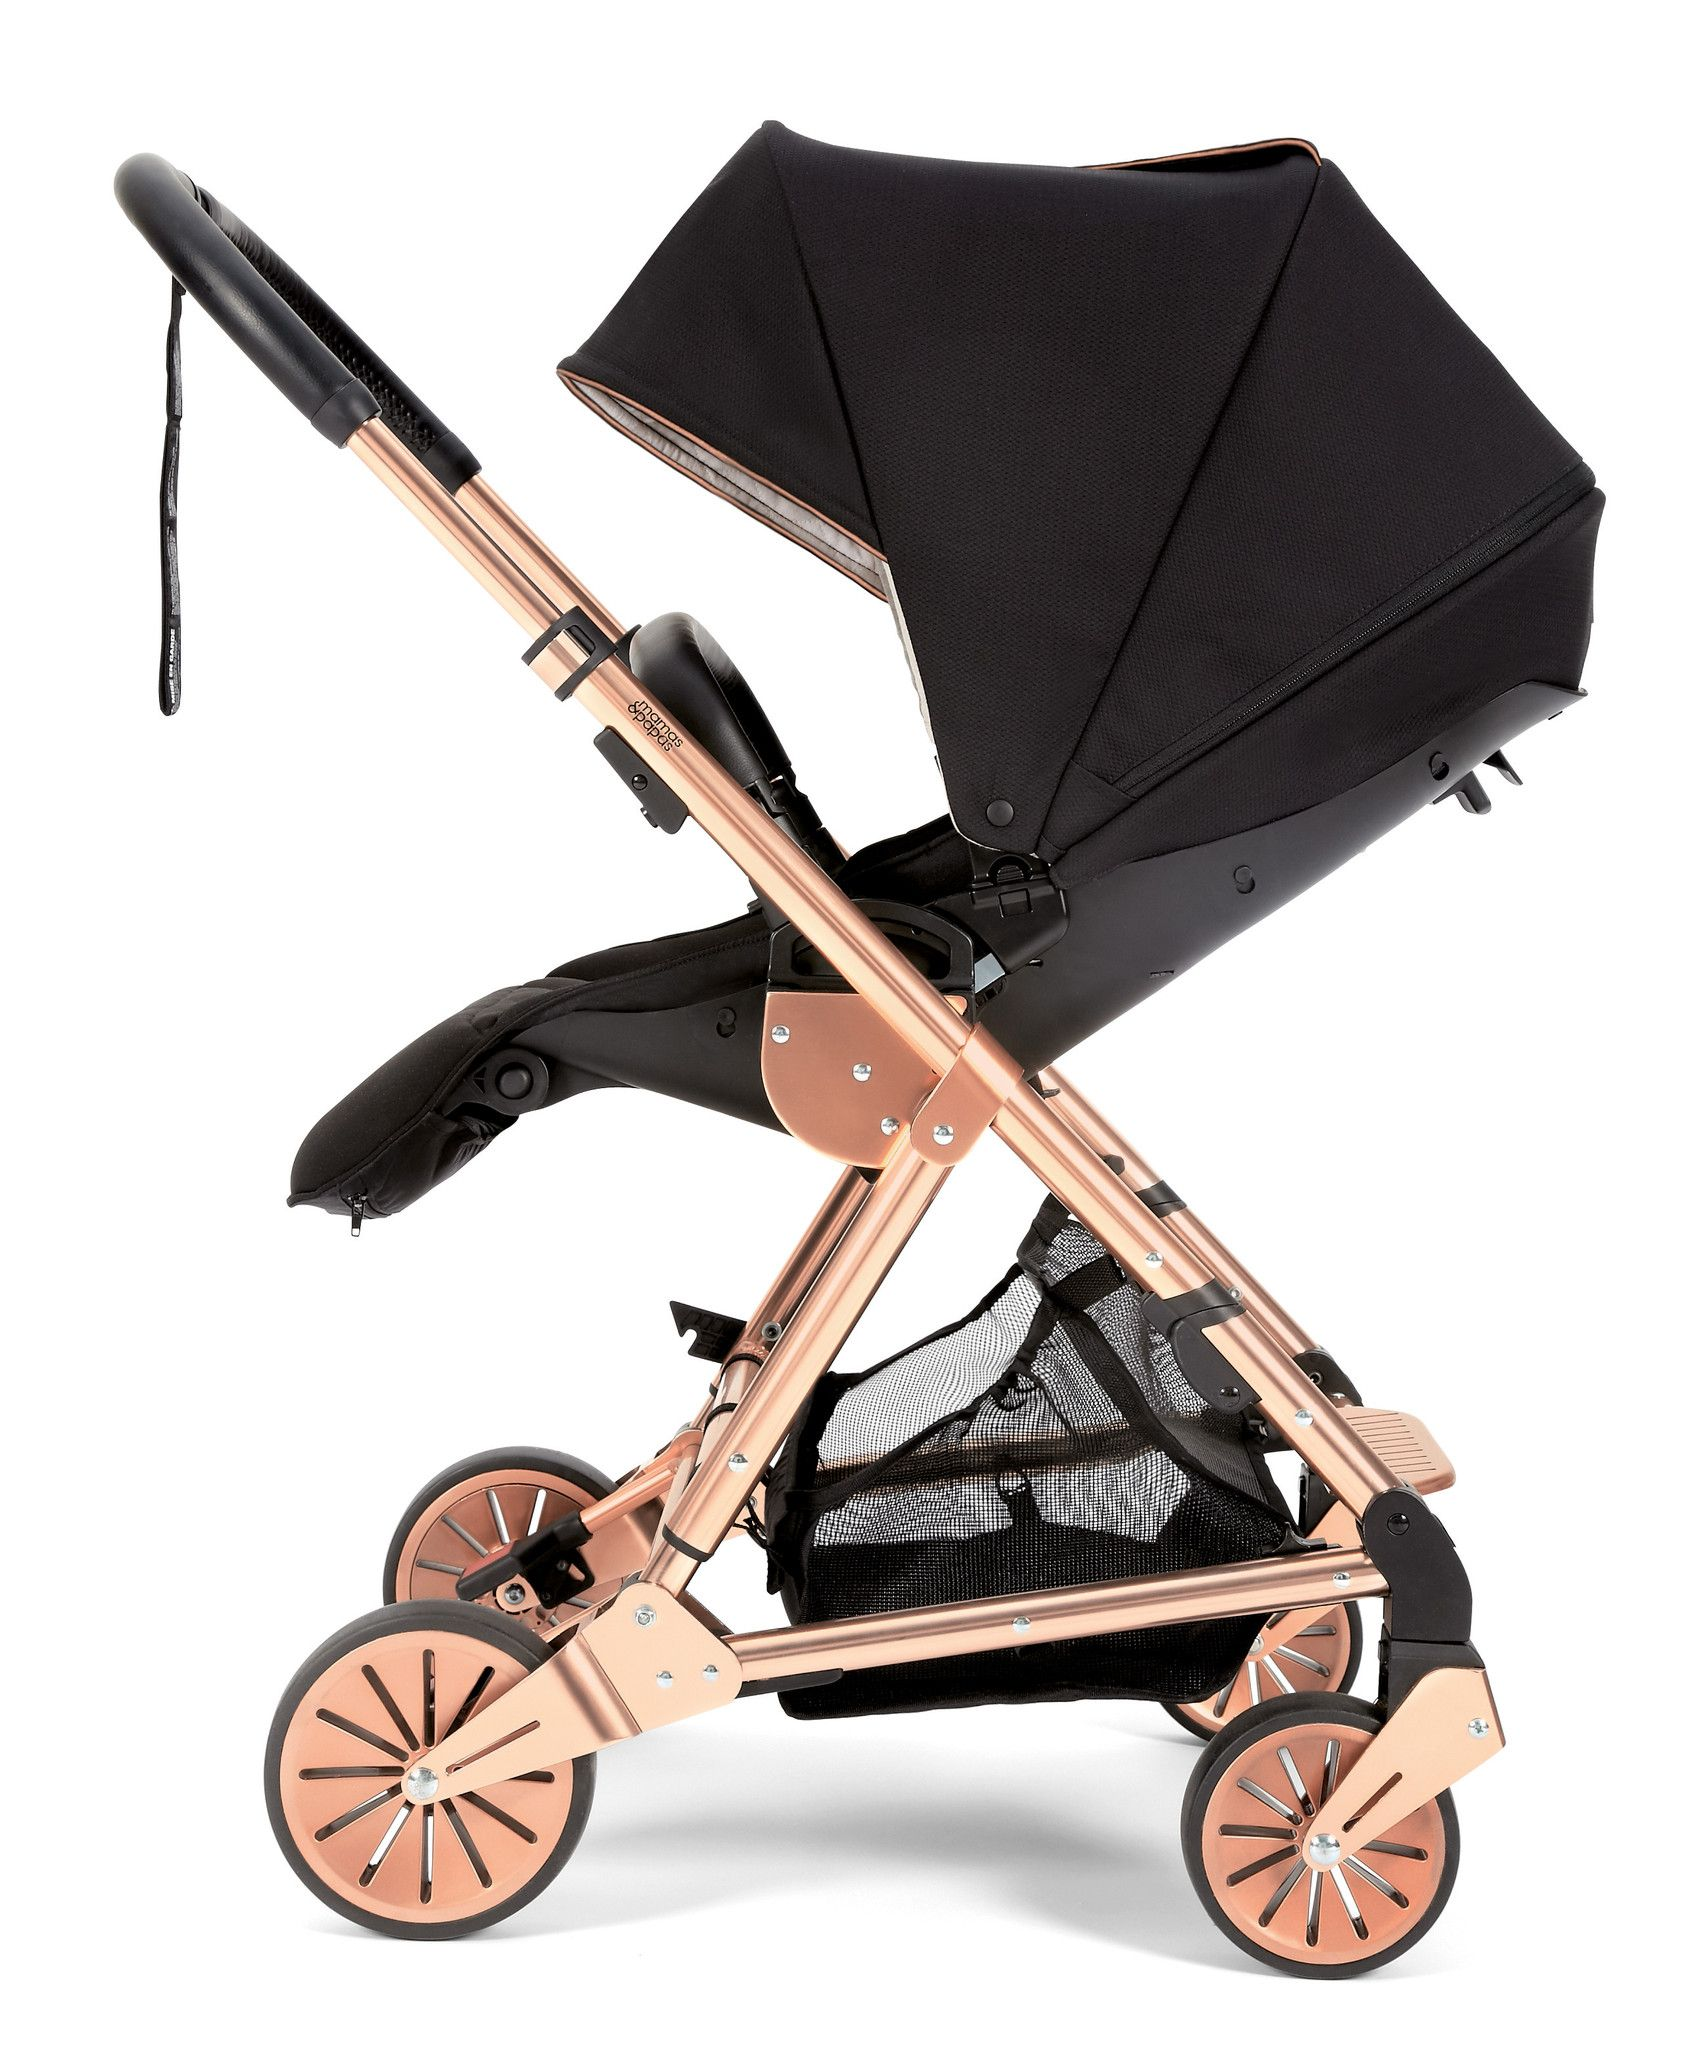 Mamas & Papas Urbo2 Stroller Black Rose Gold Limited Edition